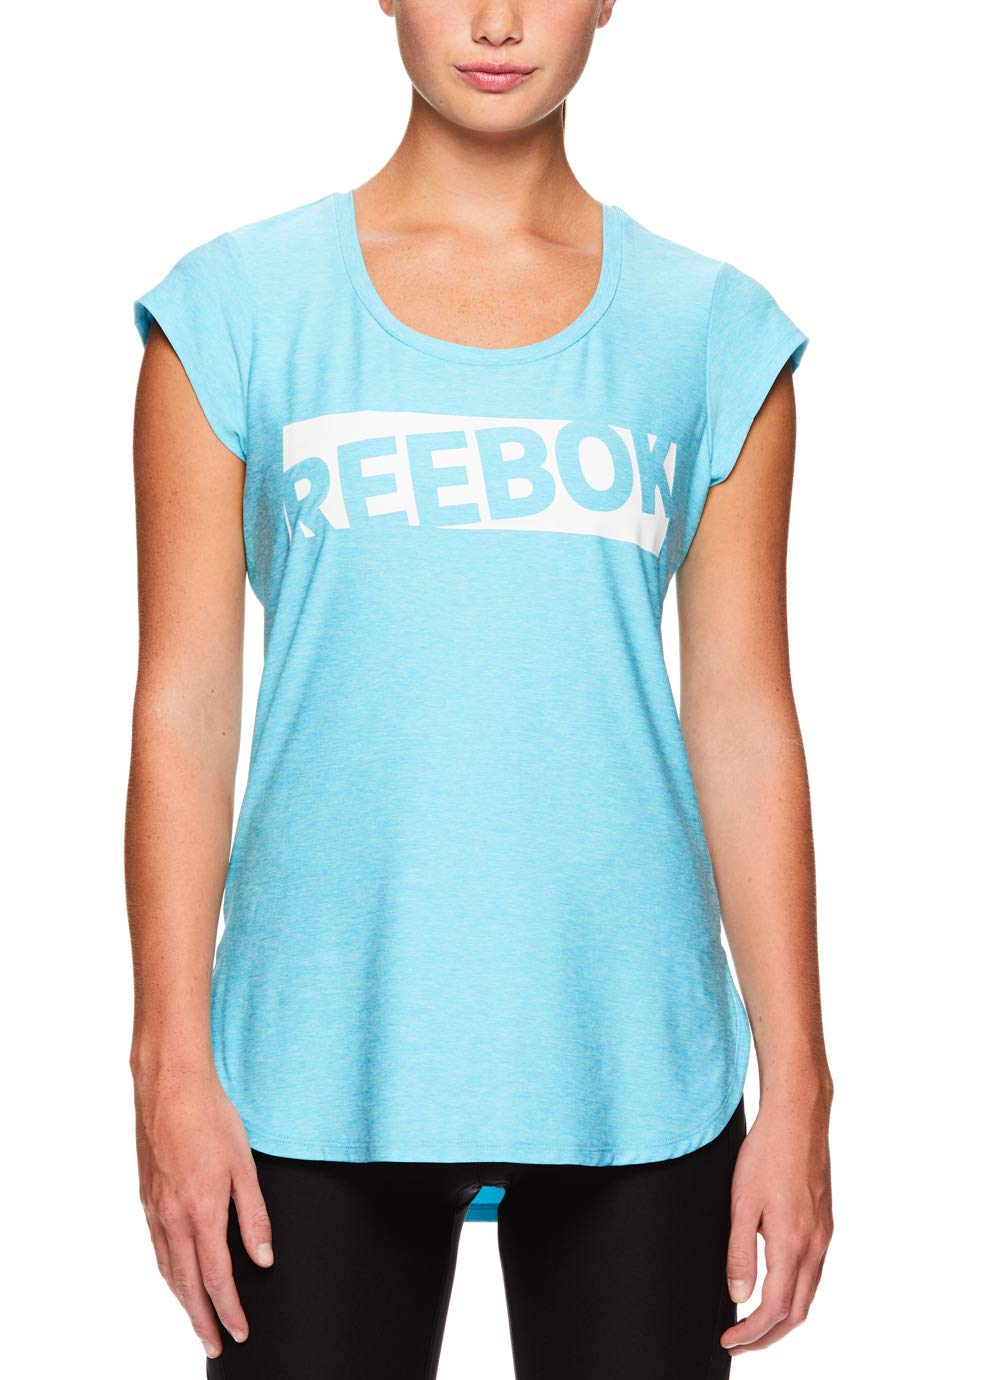 Reebok Women's Legend Performance Top Short Sleeve T-Shirt - Blue Atoll Heather, Extra Small by Reebok (Image #1)